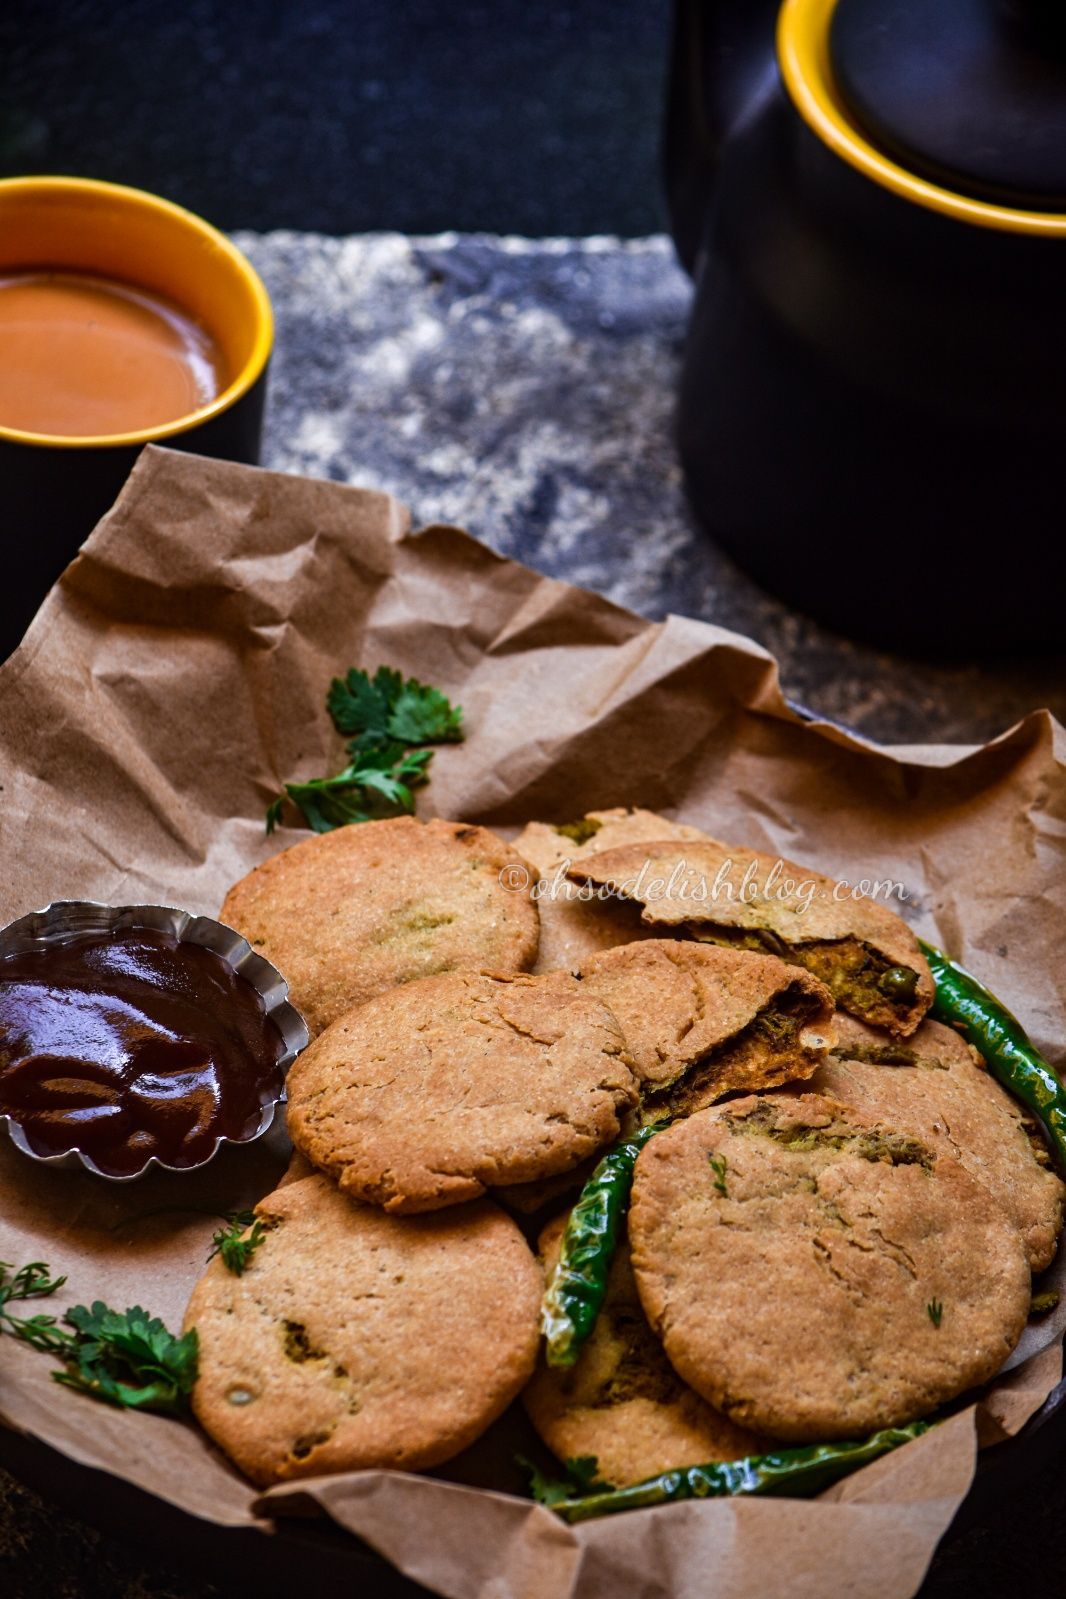 Baked wholewheat peas kachori